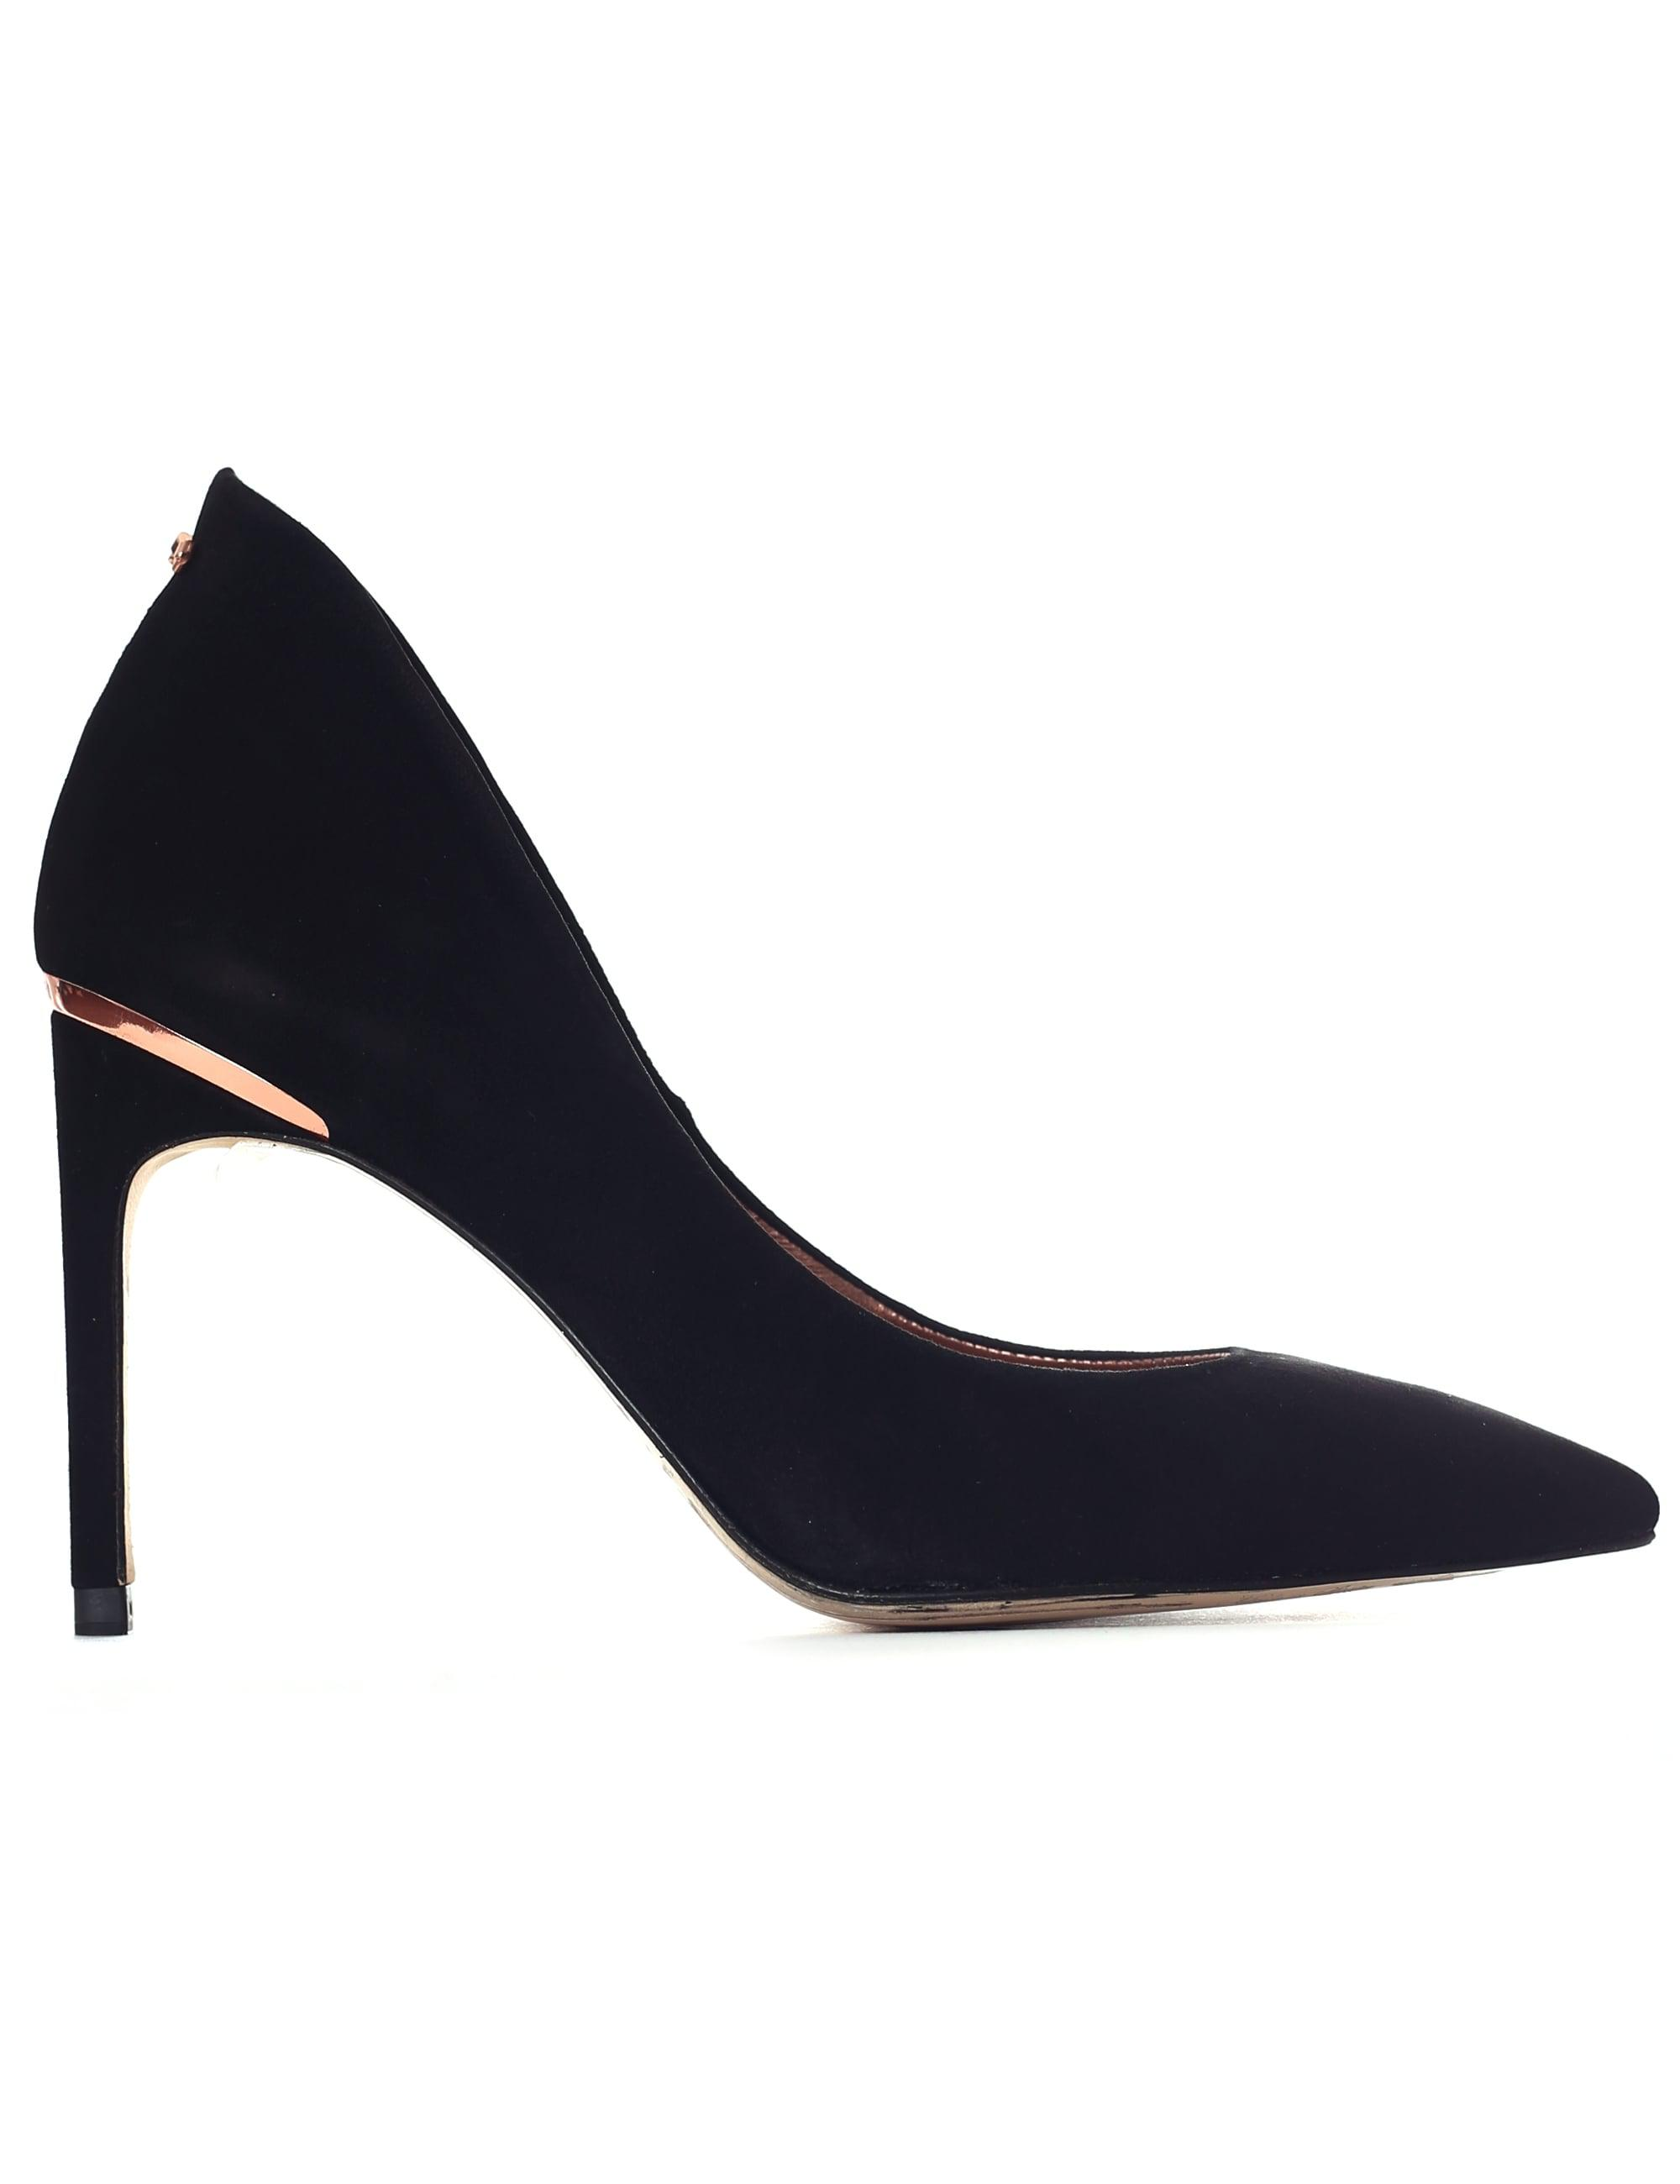 825531b1d657 Ted Baker Savio 2 Curved High Back Suede Courts in Black - Lyst